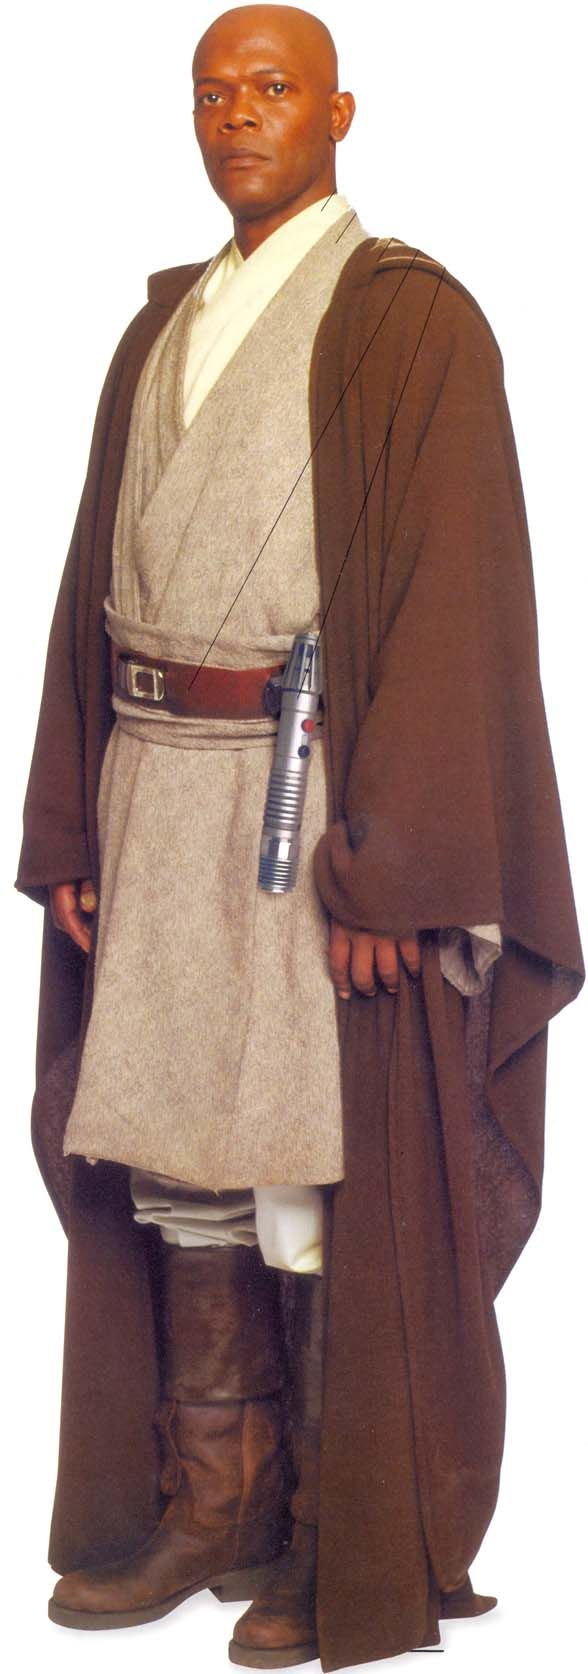 Mace Windu for Halloween costume details.